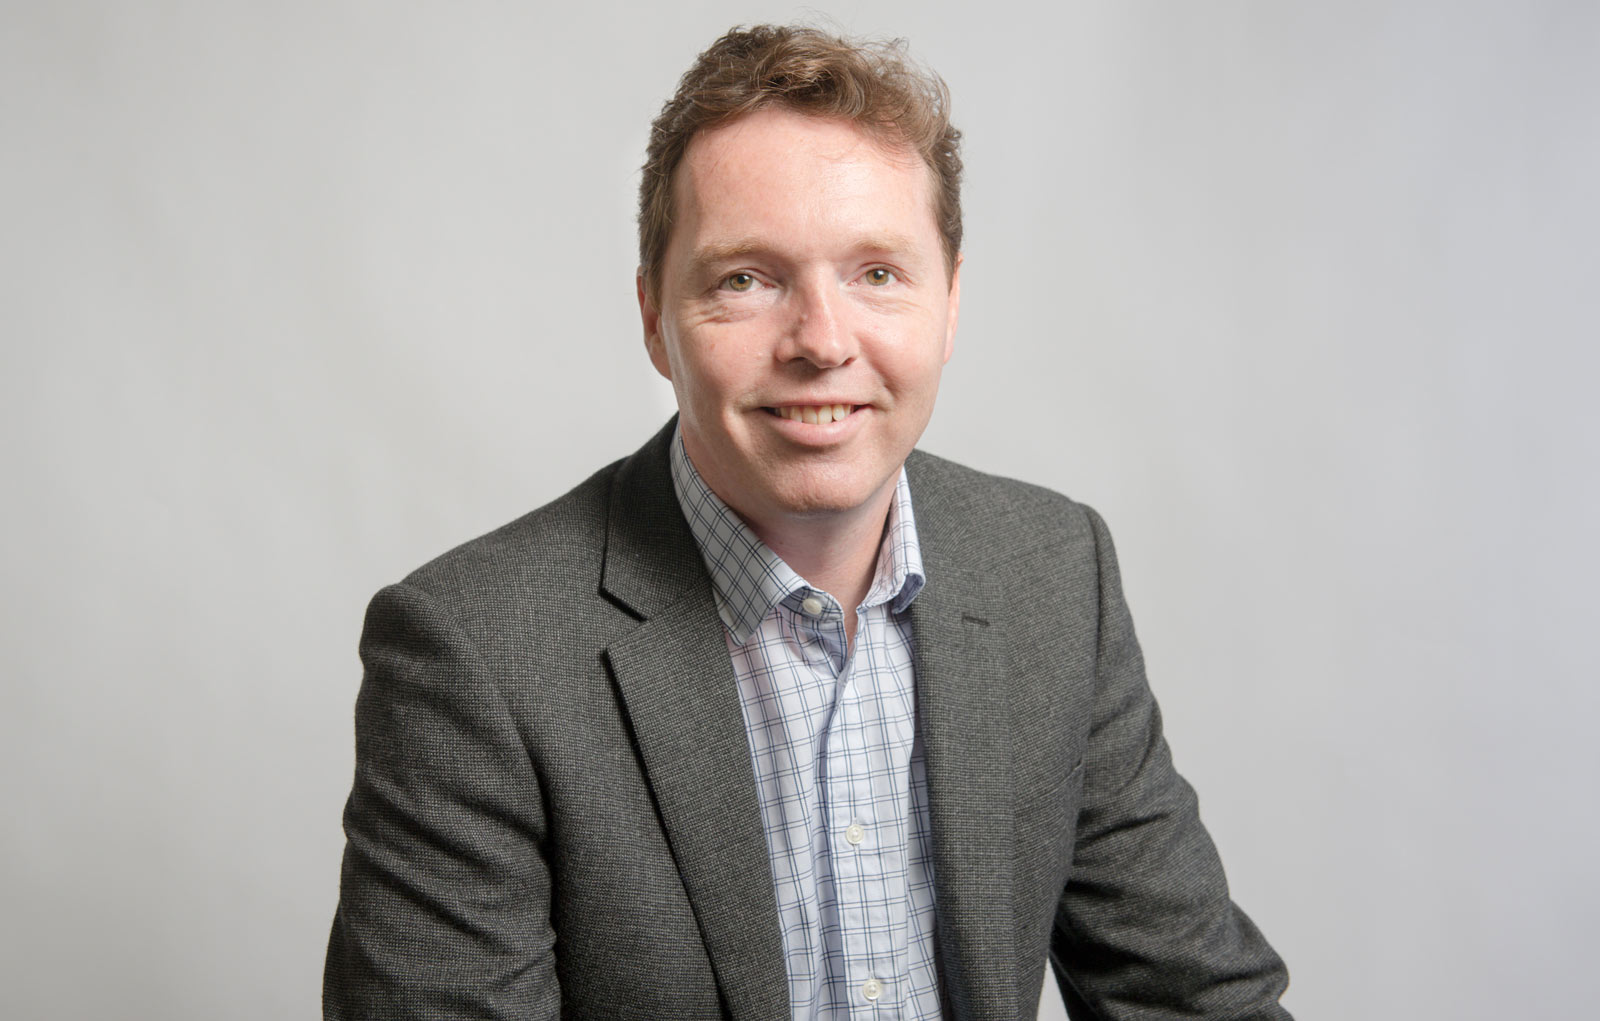 Gary Atkinson, director of emerging technologies at ARM